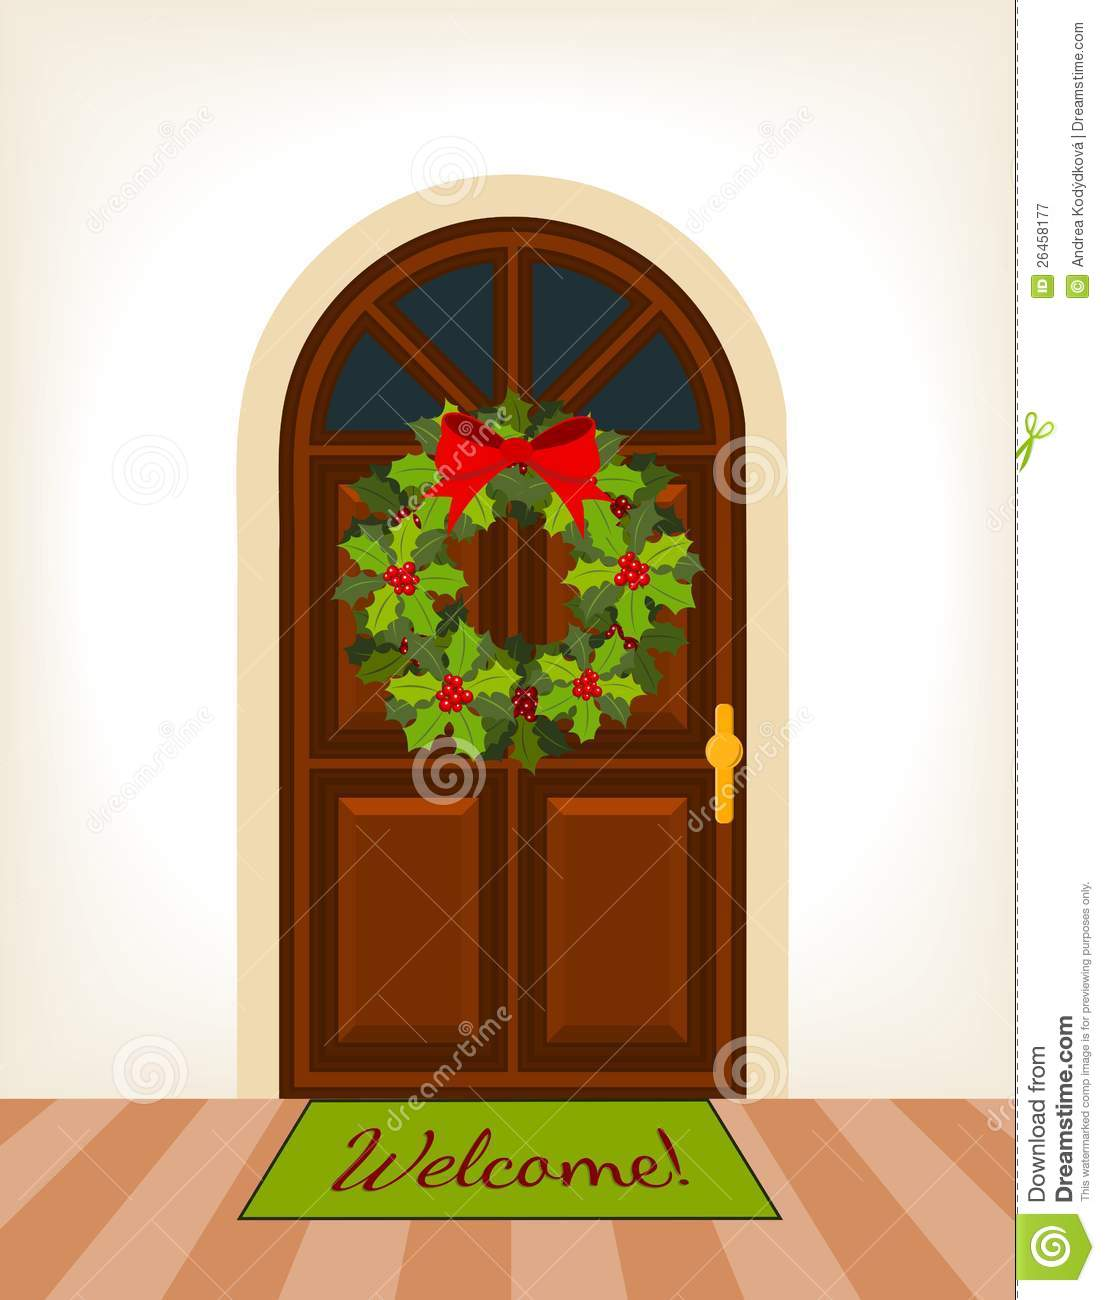 Christmas decorated doors clipart picture download Christmas Door Clipart, Christmas Decorated Office Door Clip Art ... picture download